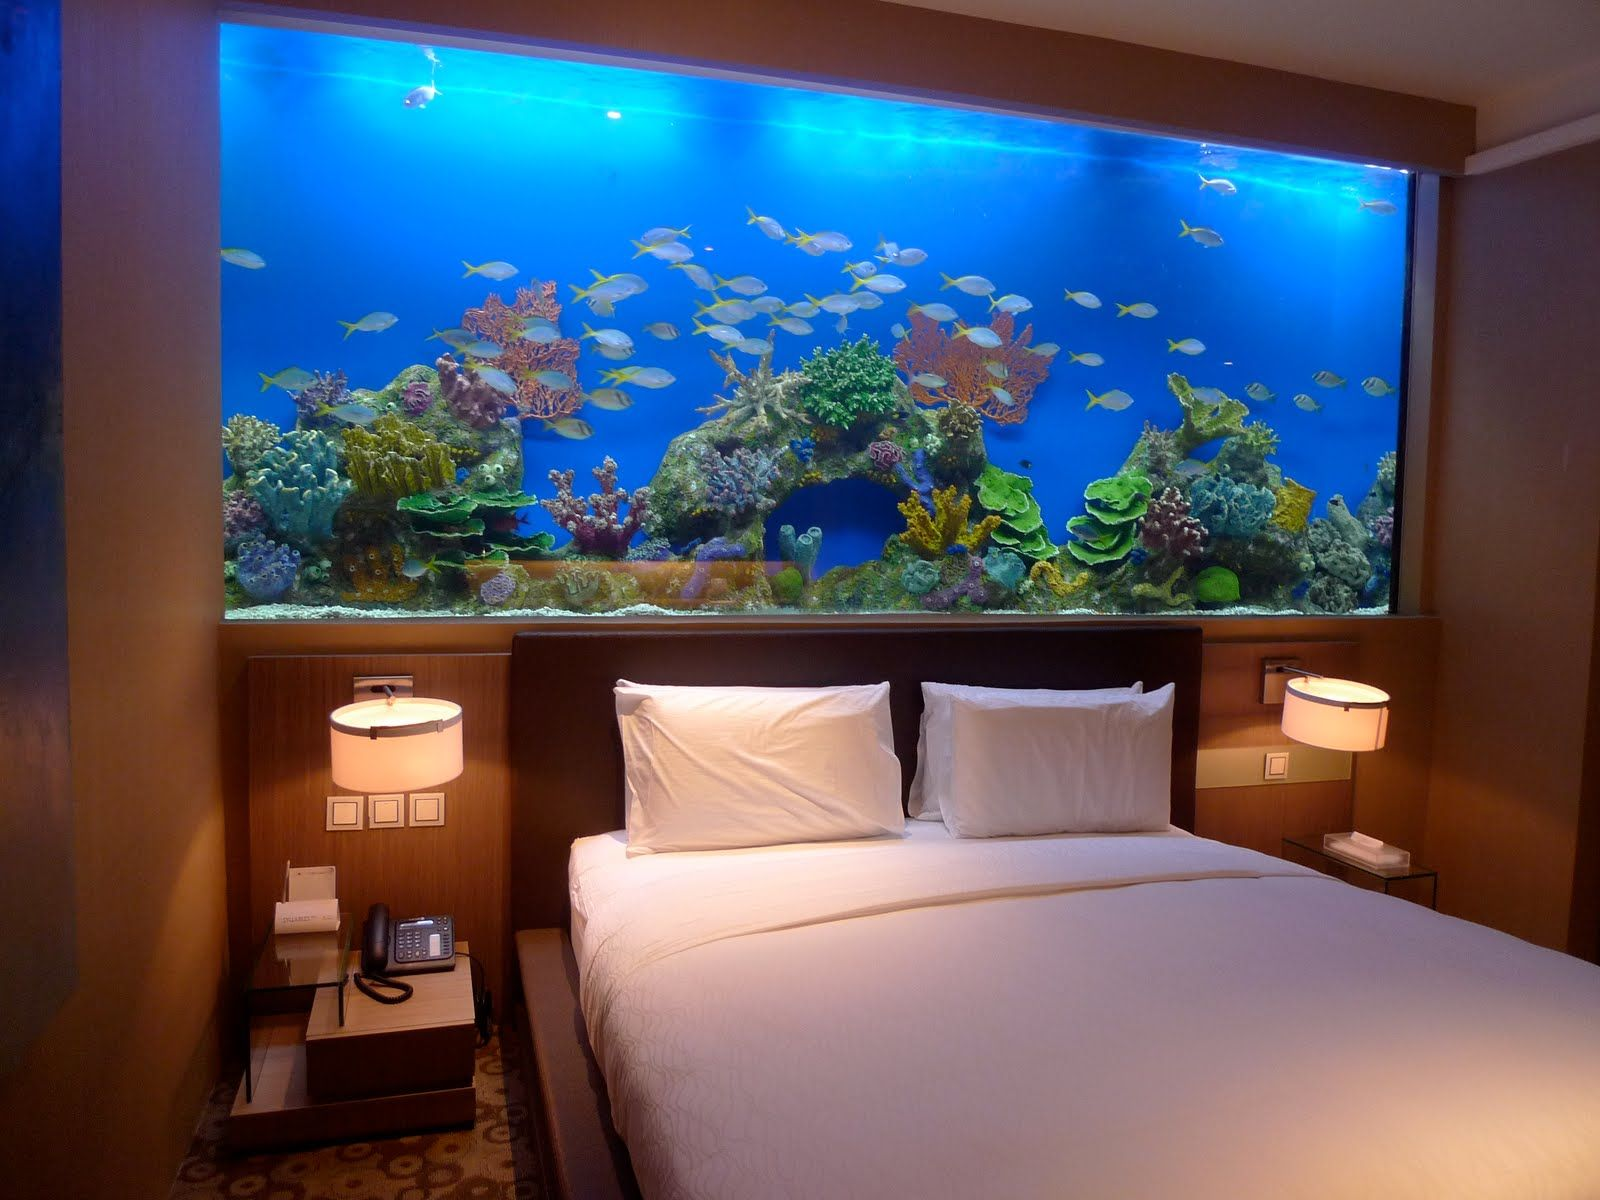 celebrities with amazing fish tanks | fish tanks | pinterest